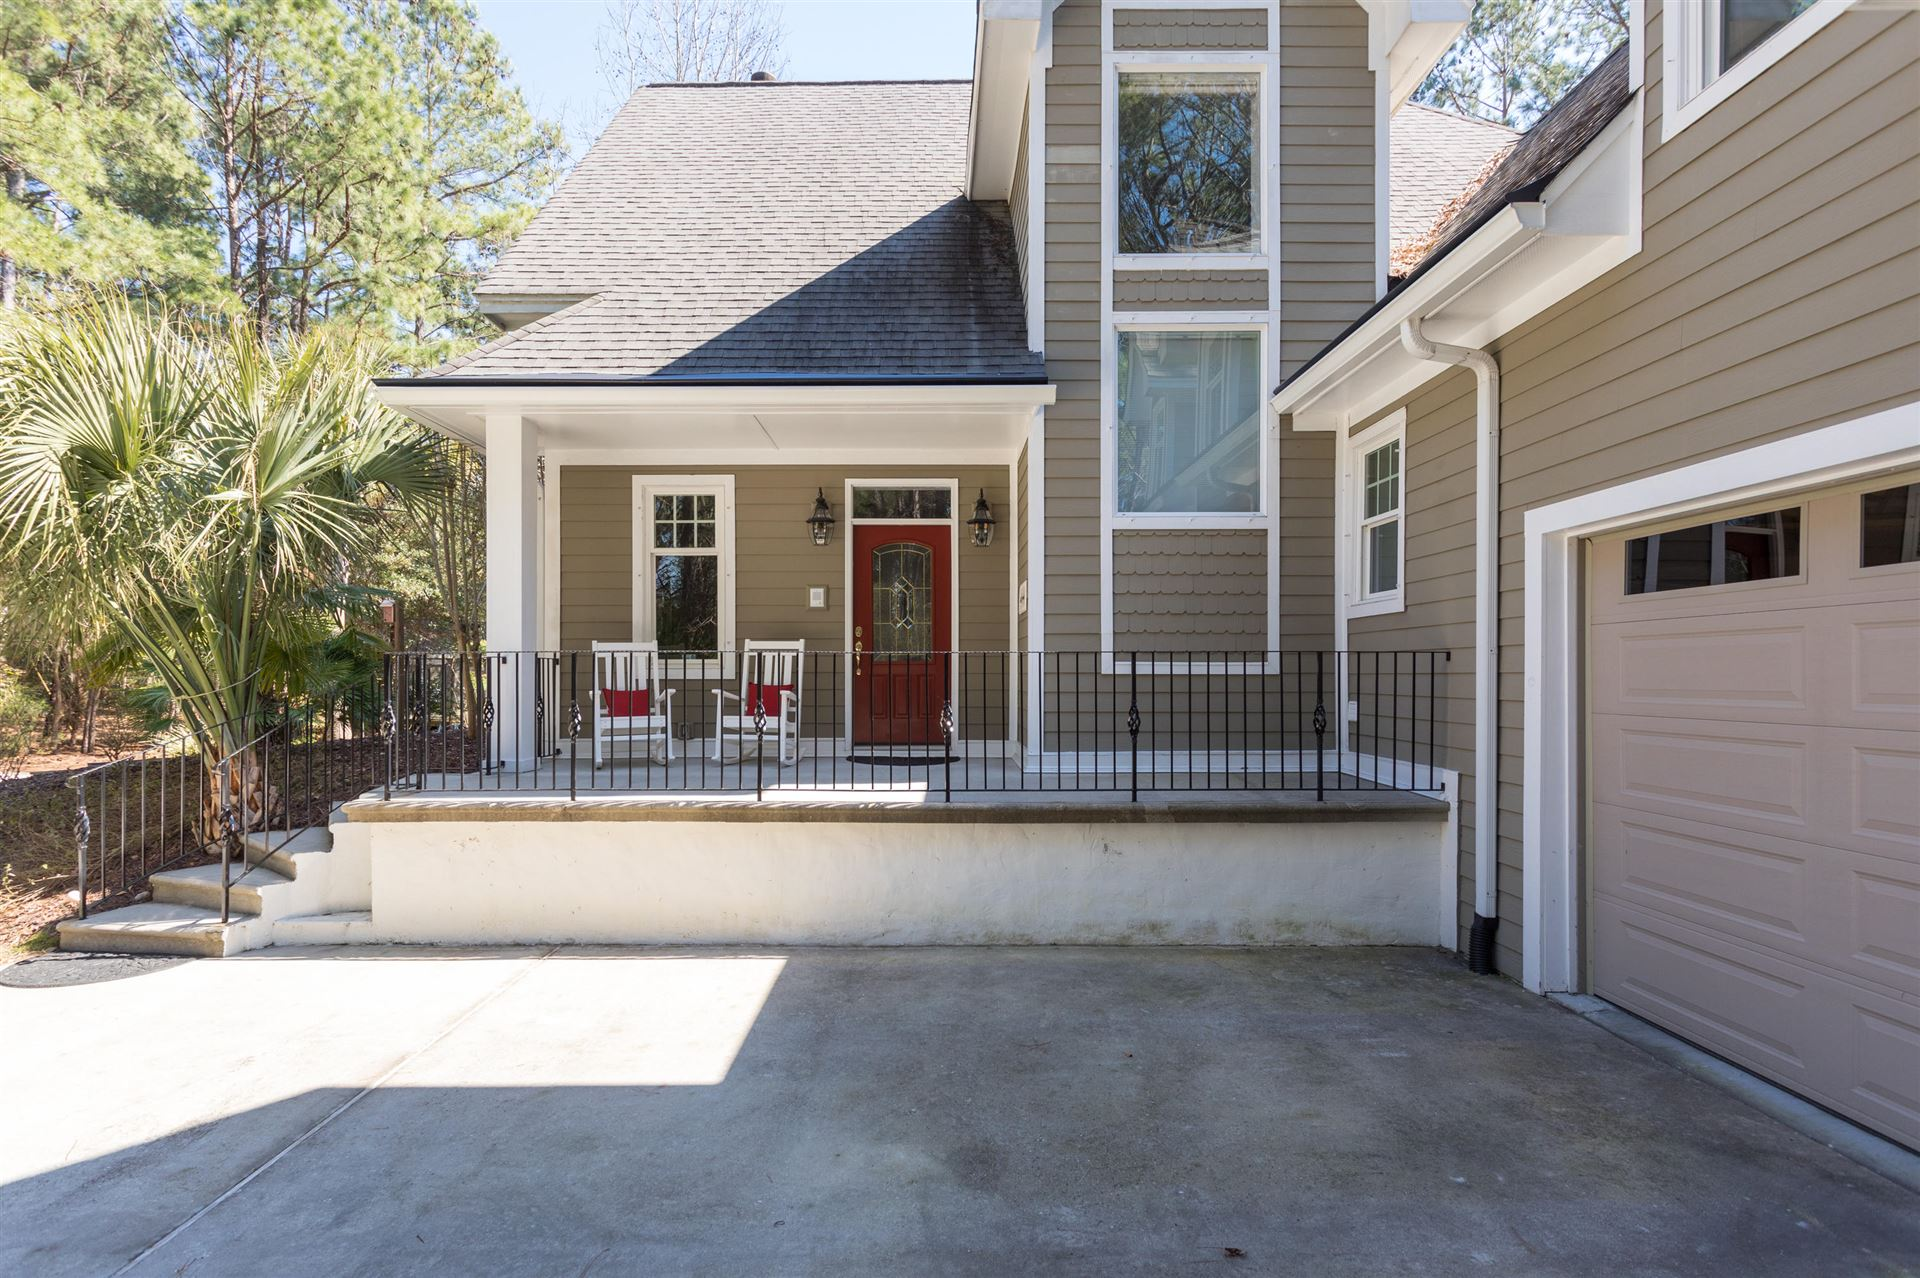 Photo of 6765 Bears Bluff Road, Wadmalaw Island, SC 29487 (MLS # 21005182)